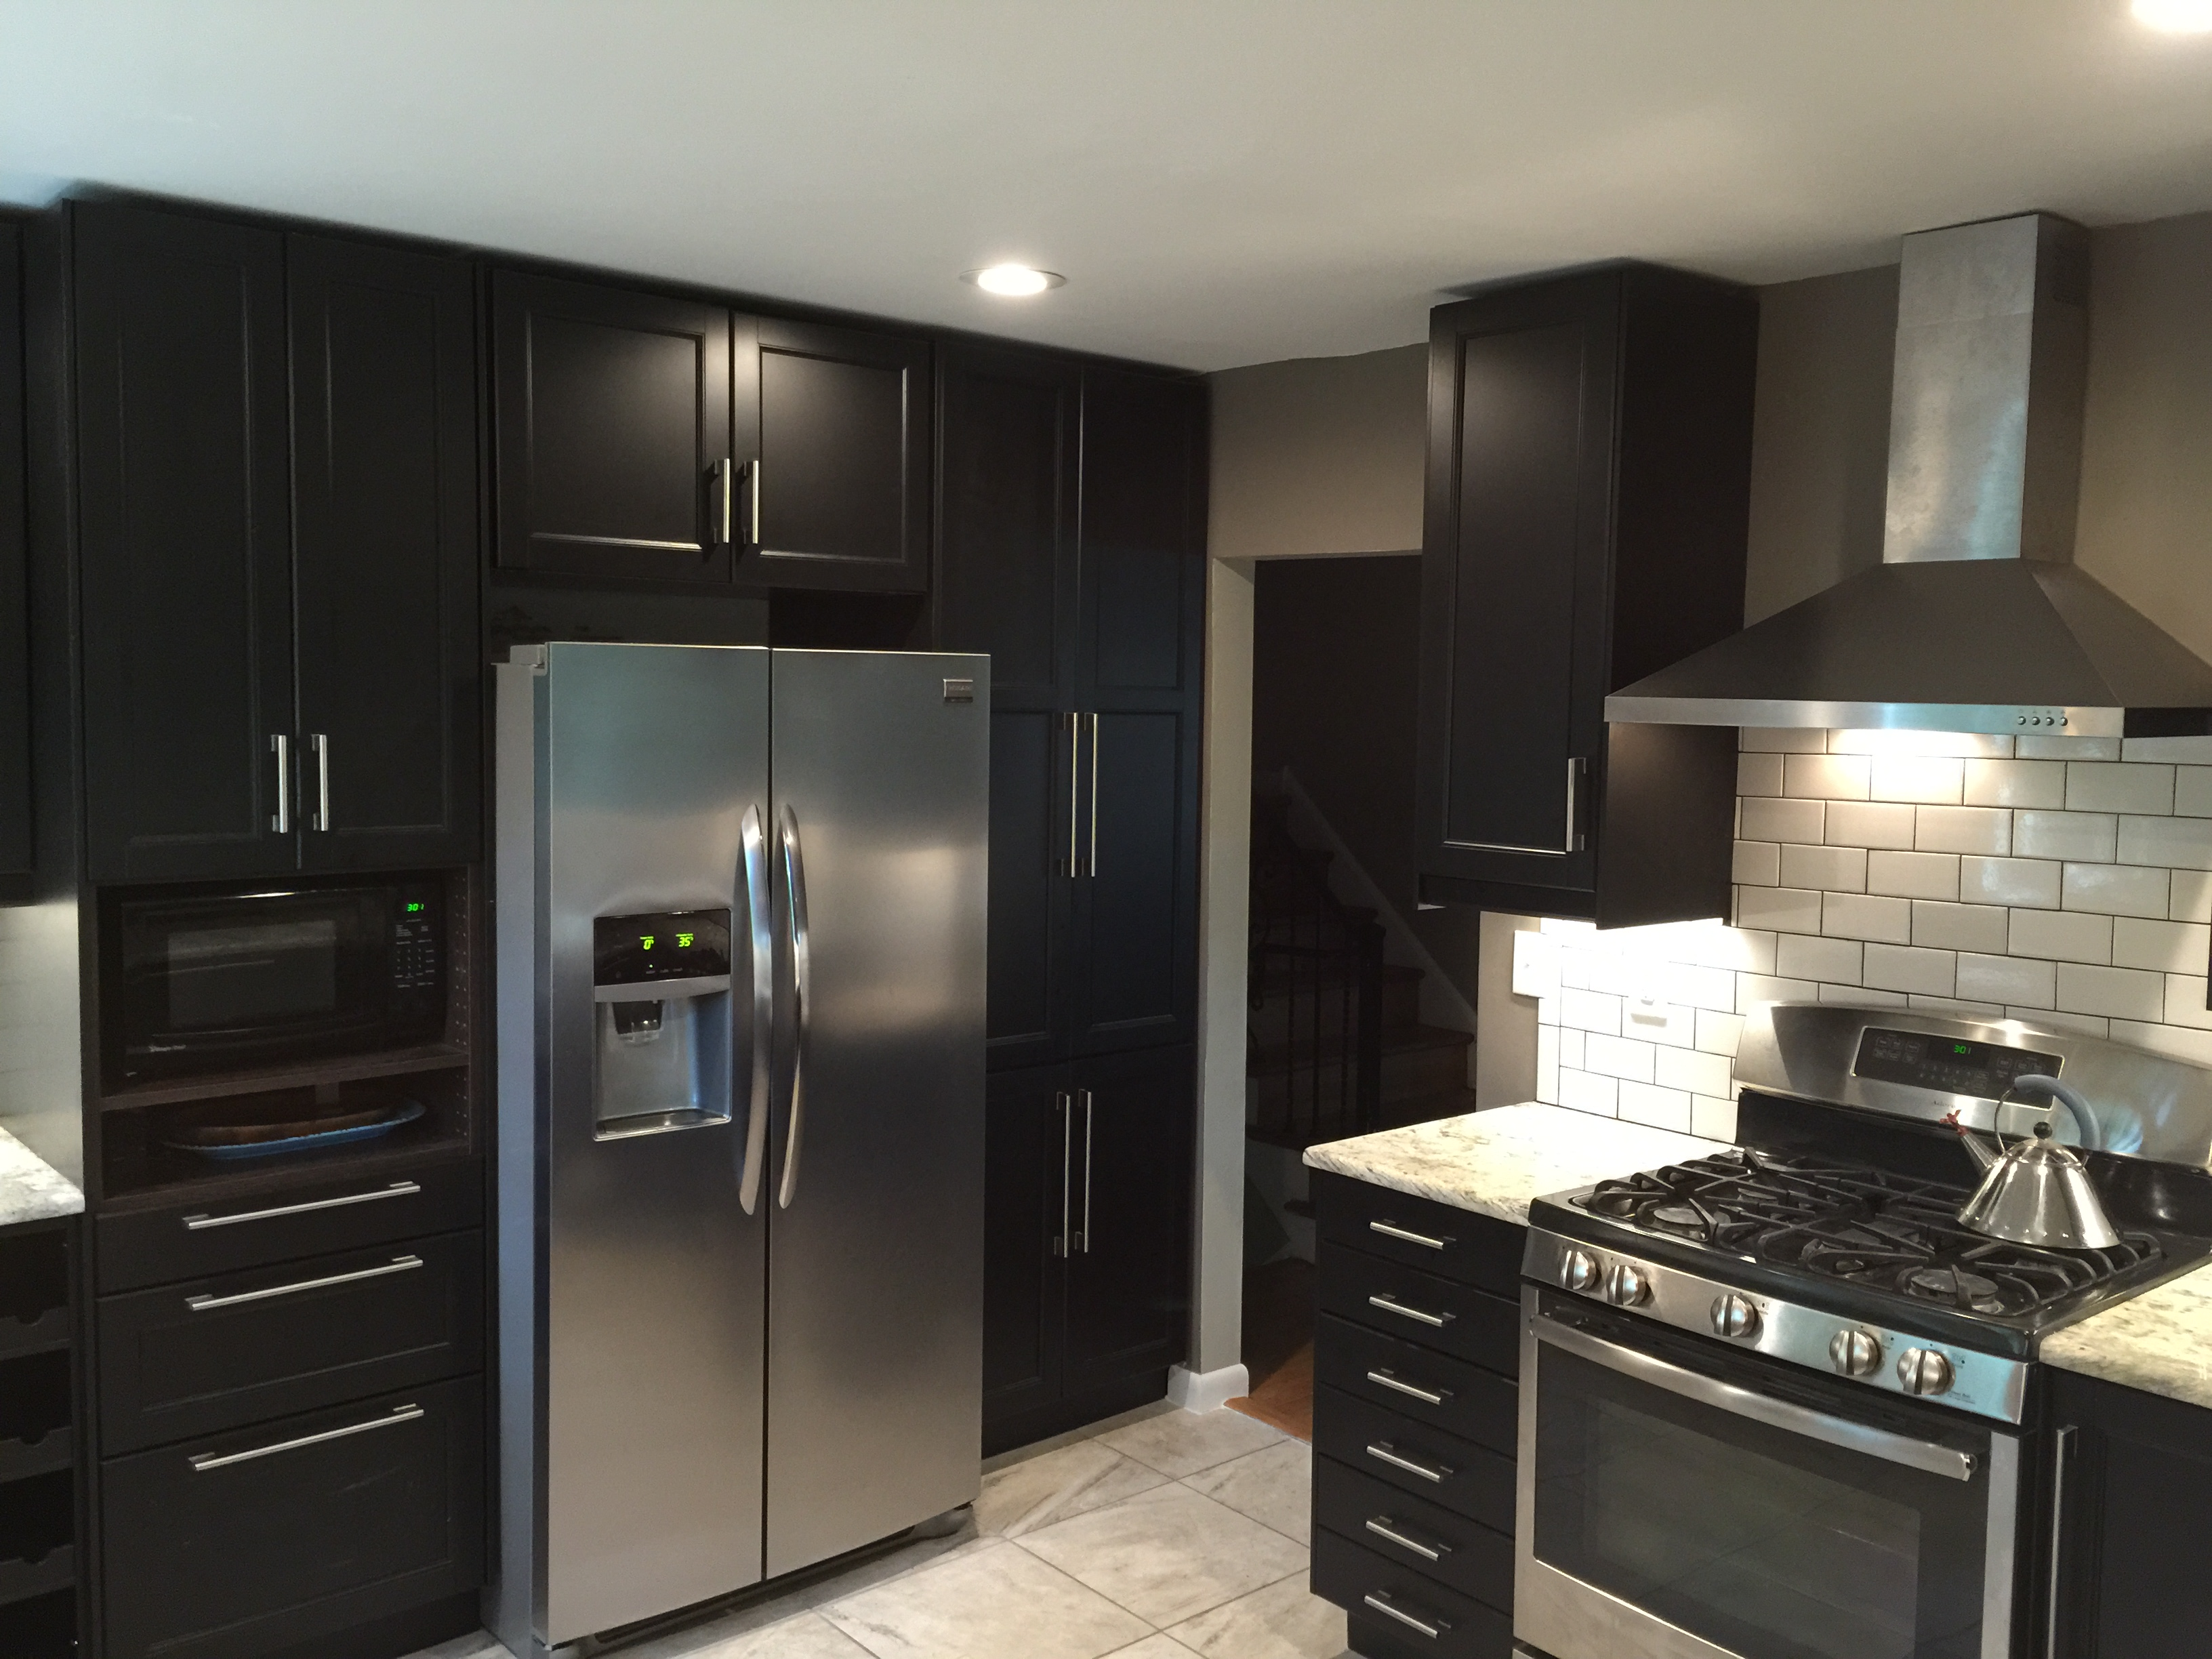 An ikea kitchen renovation for serious chefs with style for Kitchen cabinets ikea